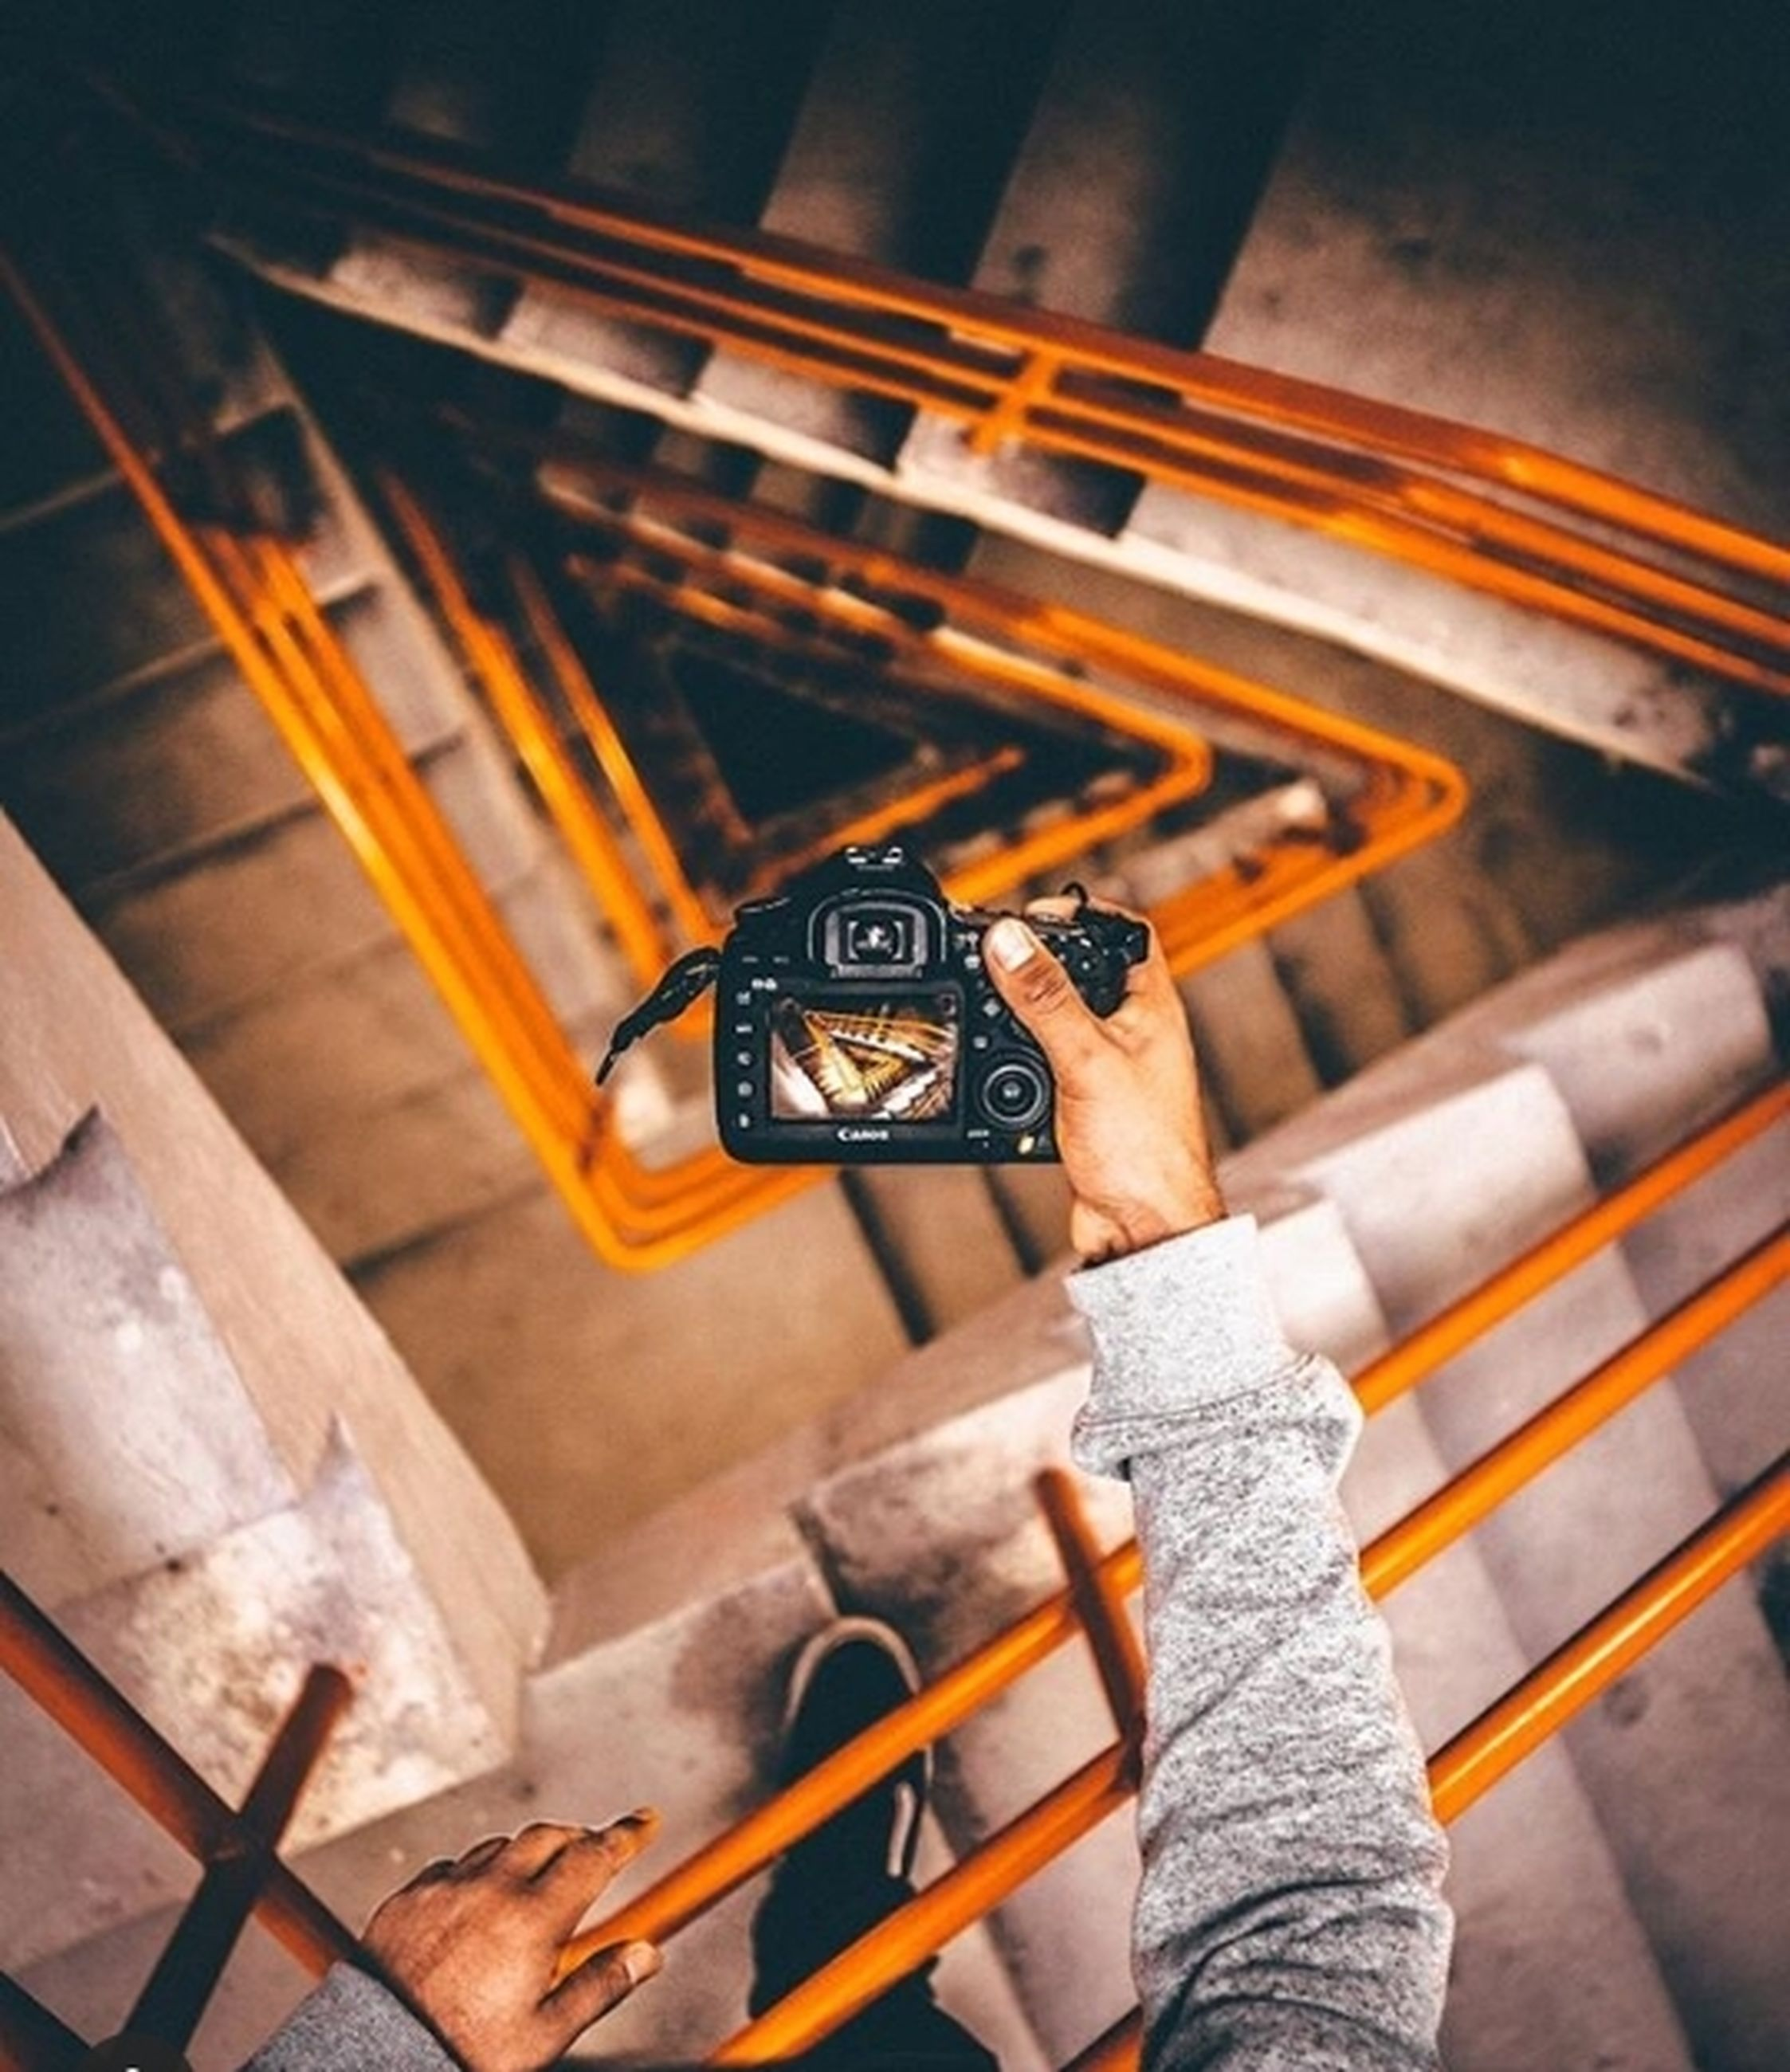 holding, one person, technology, high angle view, human hand, real people, focus on foreground, human body part, indoors, hand, wood - material, photography themes, camera - photographic equipment, unrecognizable person, close-up, day, directly above, retro styled, photographer